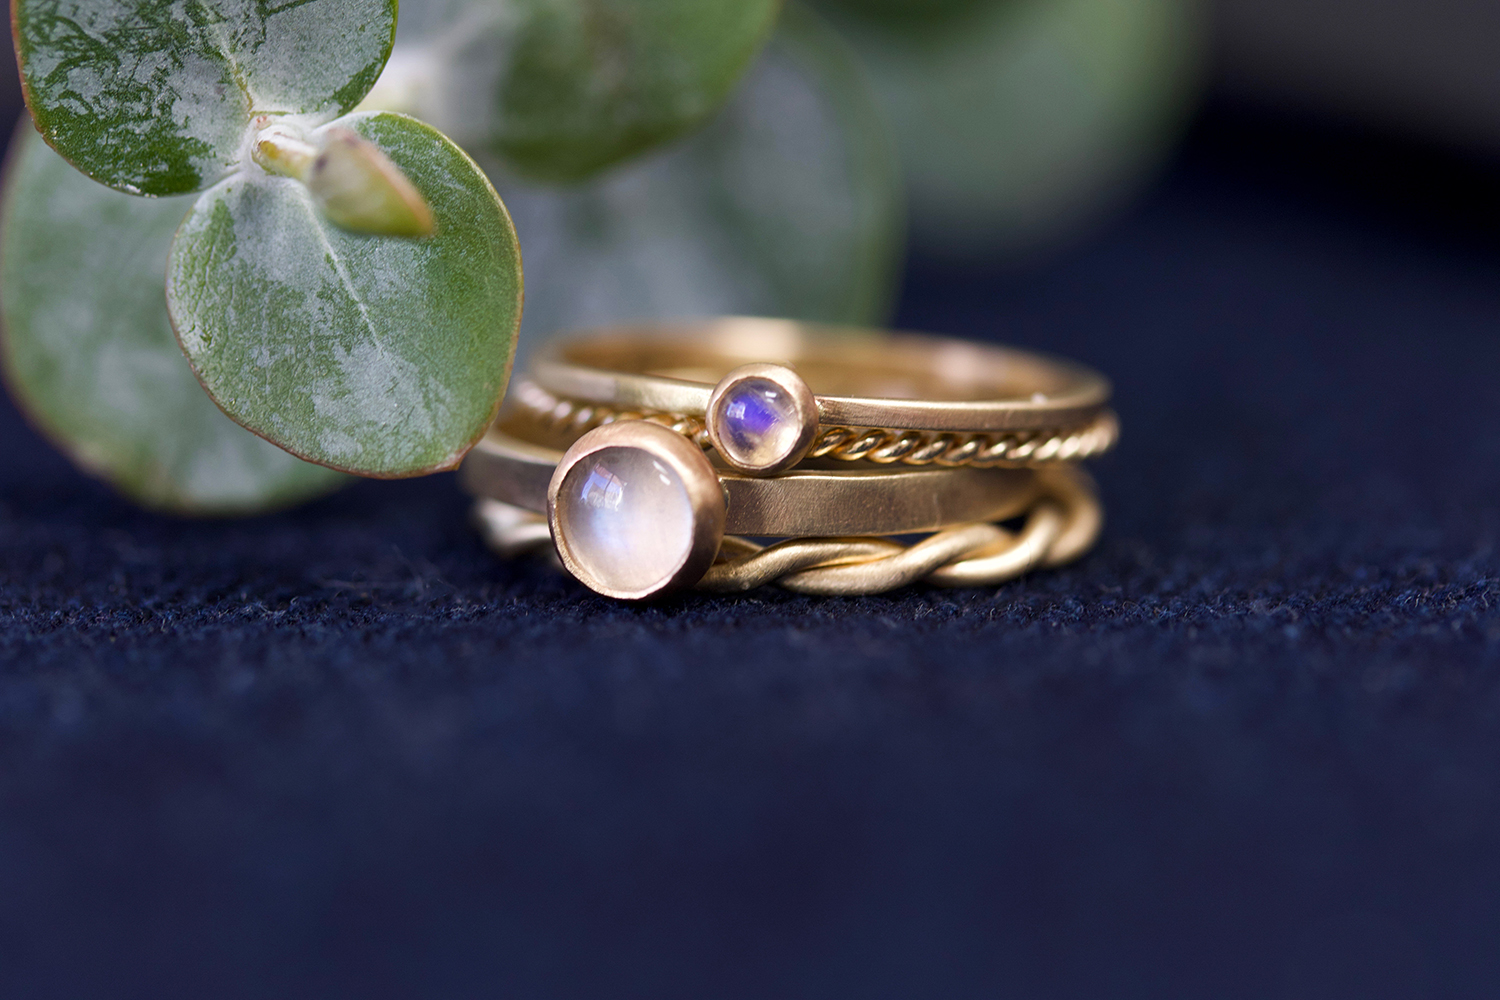 the  Moonstone Katherine  ring, along with the  Moonstone Terence  and plain  Rope  bands.